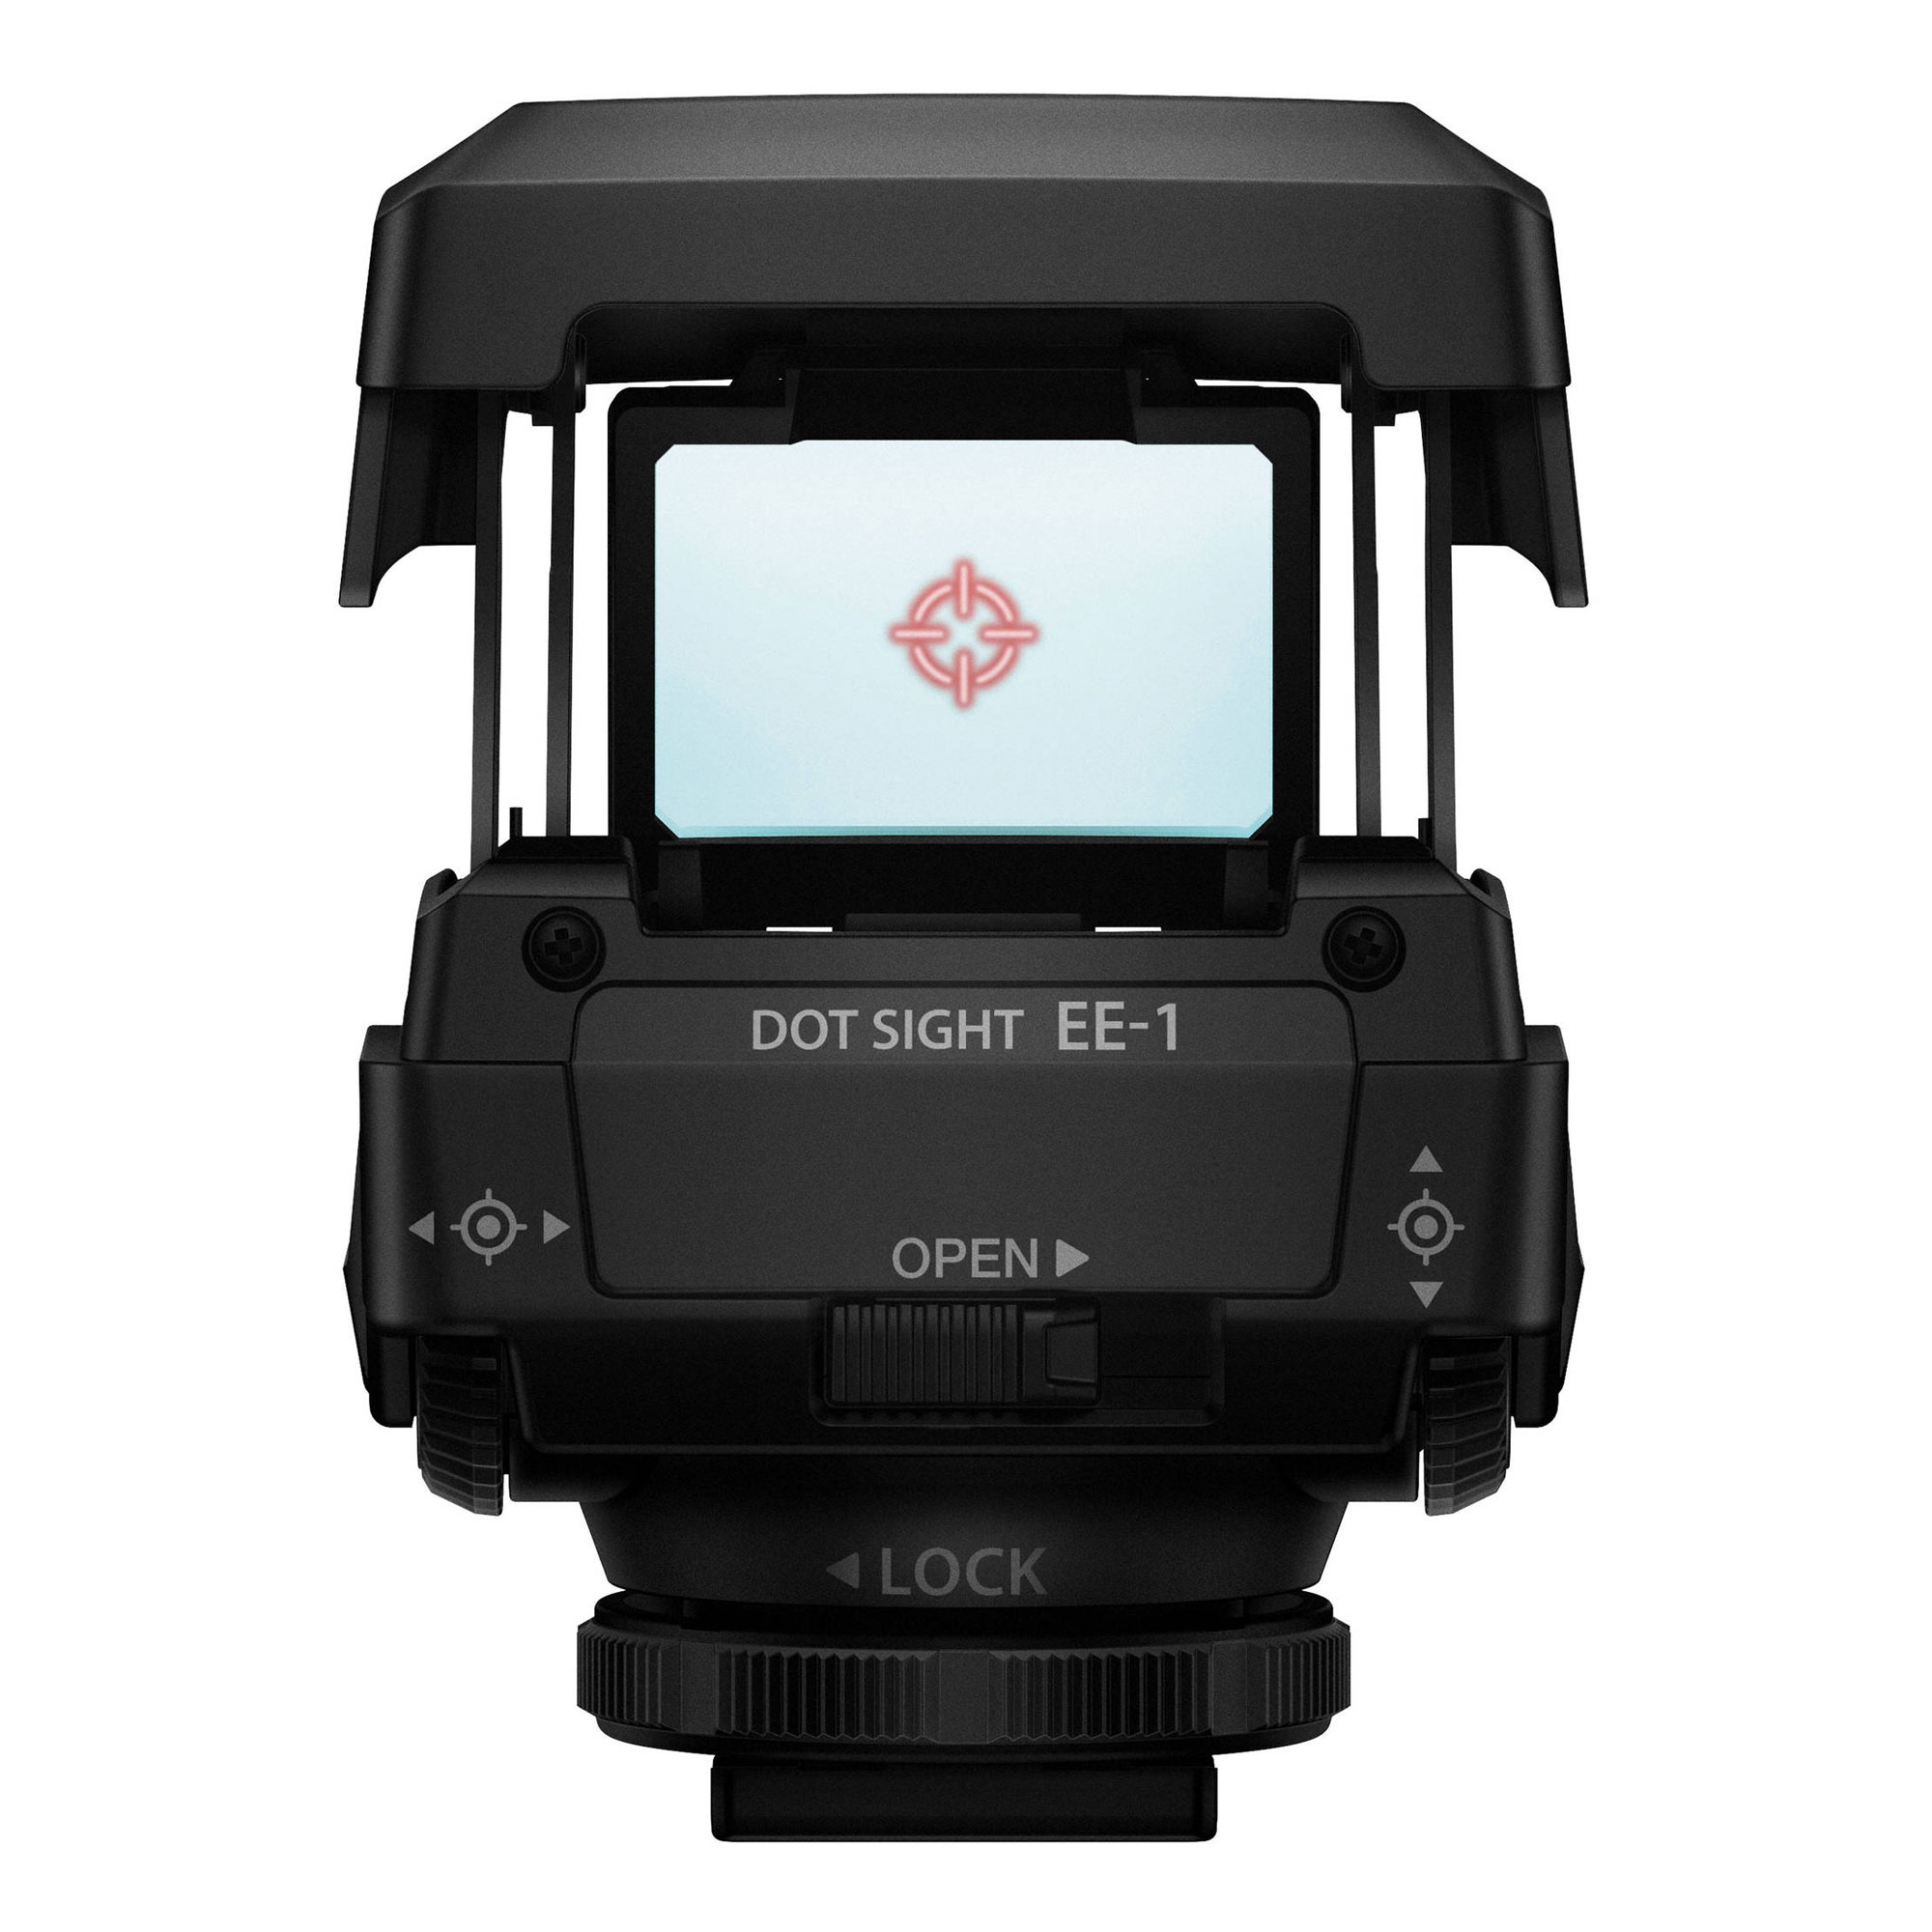 EE-1 Dot Sight for OM-D E-M5 Mark II or Stylus 1 Camera